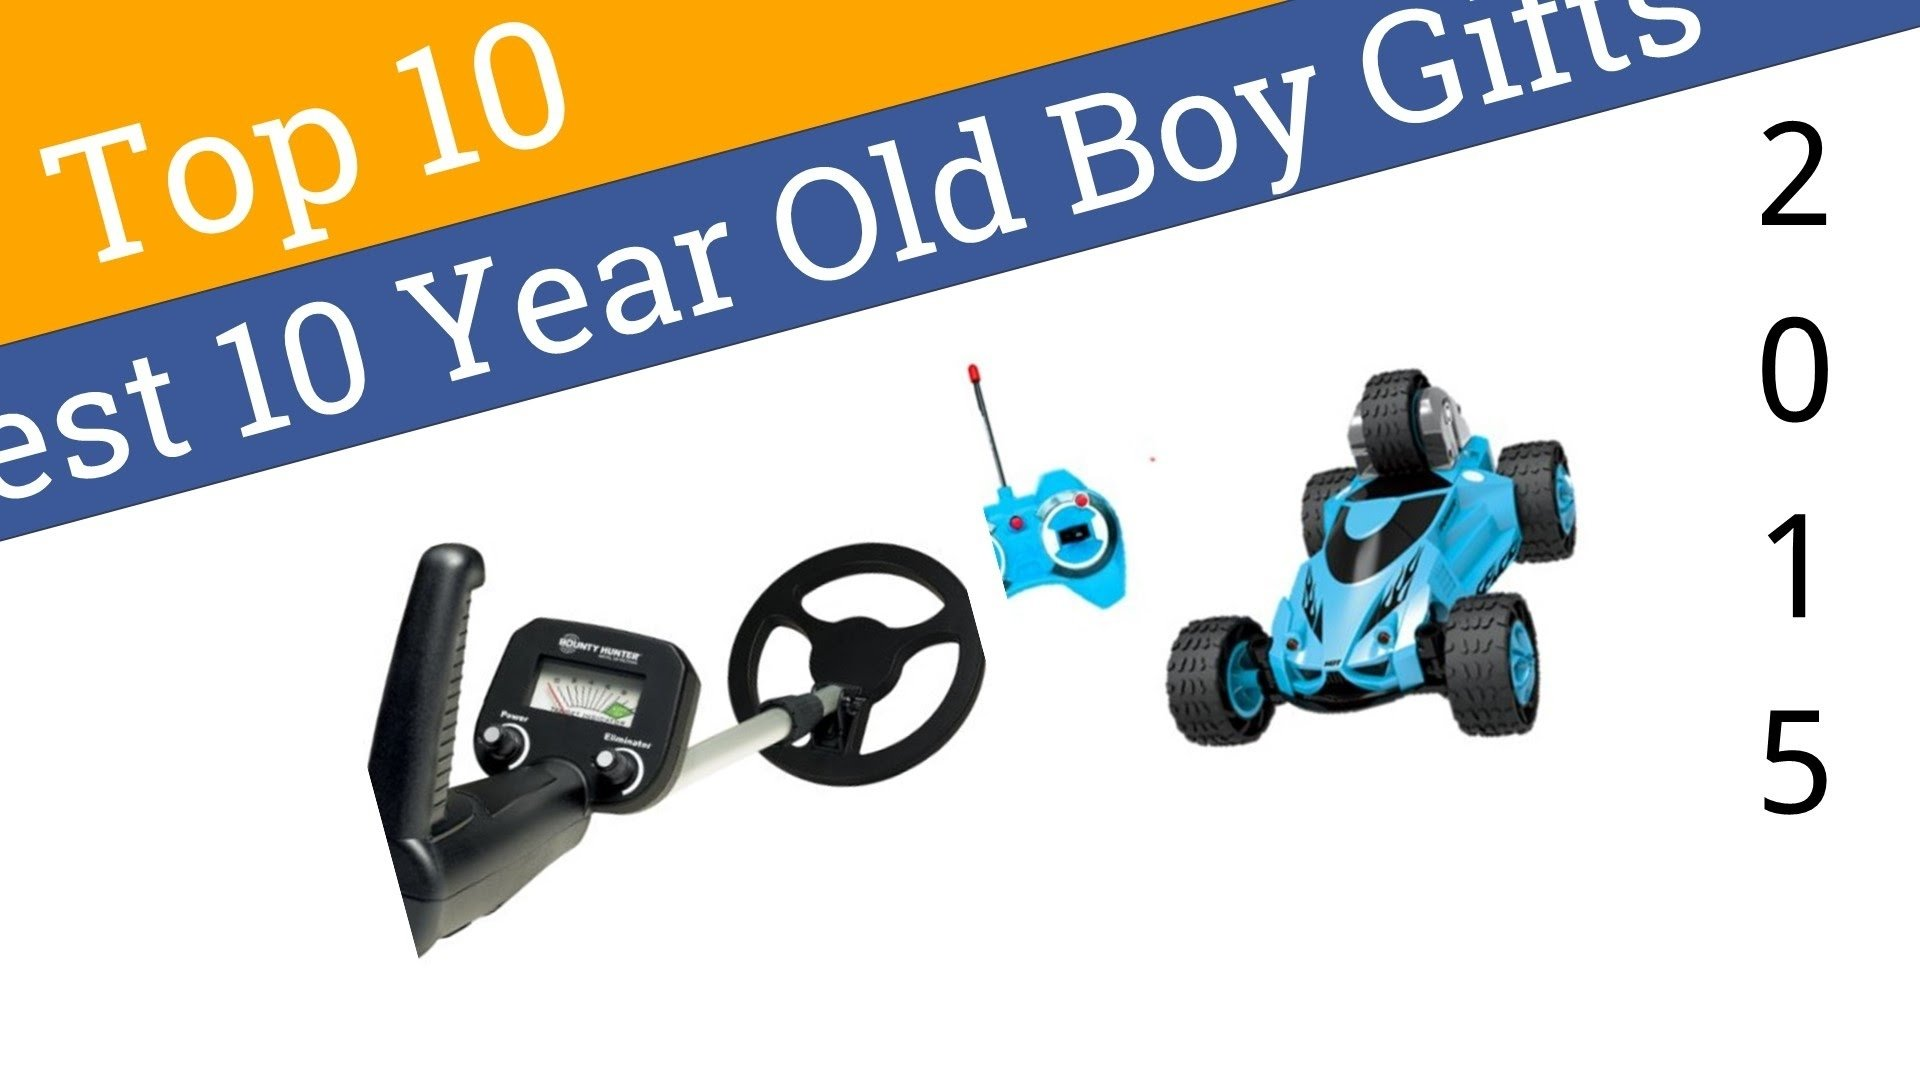 10 Unique Gift Ideas For 10 Year Old Boy 10 best 10 year old boy gifts 2015 youtube 7 2020